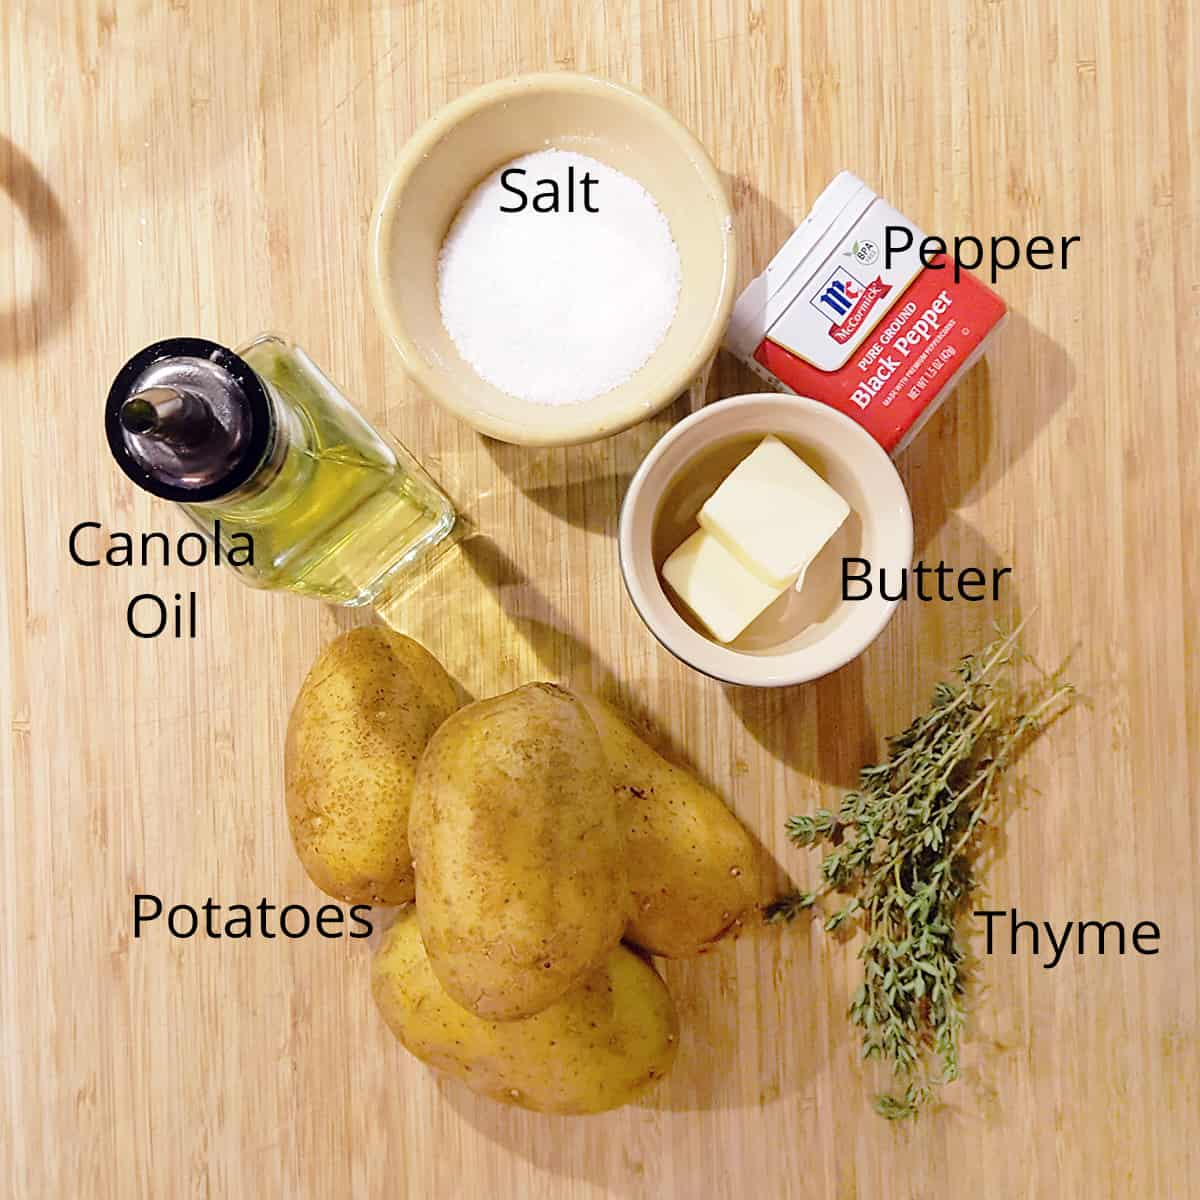 Ingredients needed for the recipe: salt, pepper, butter, thyme, potatoes, canola oil